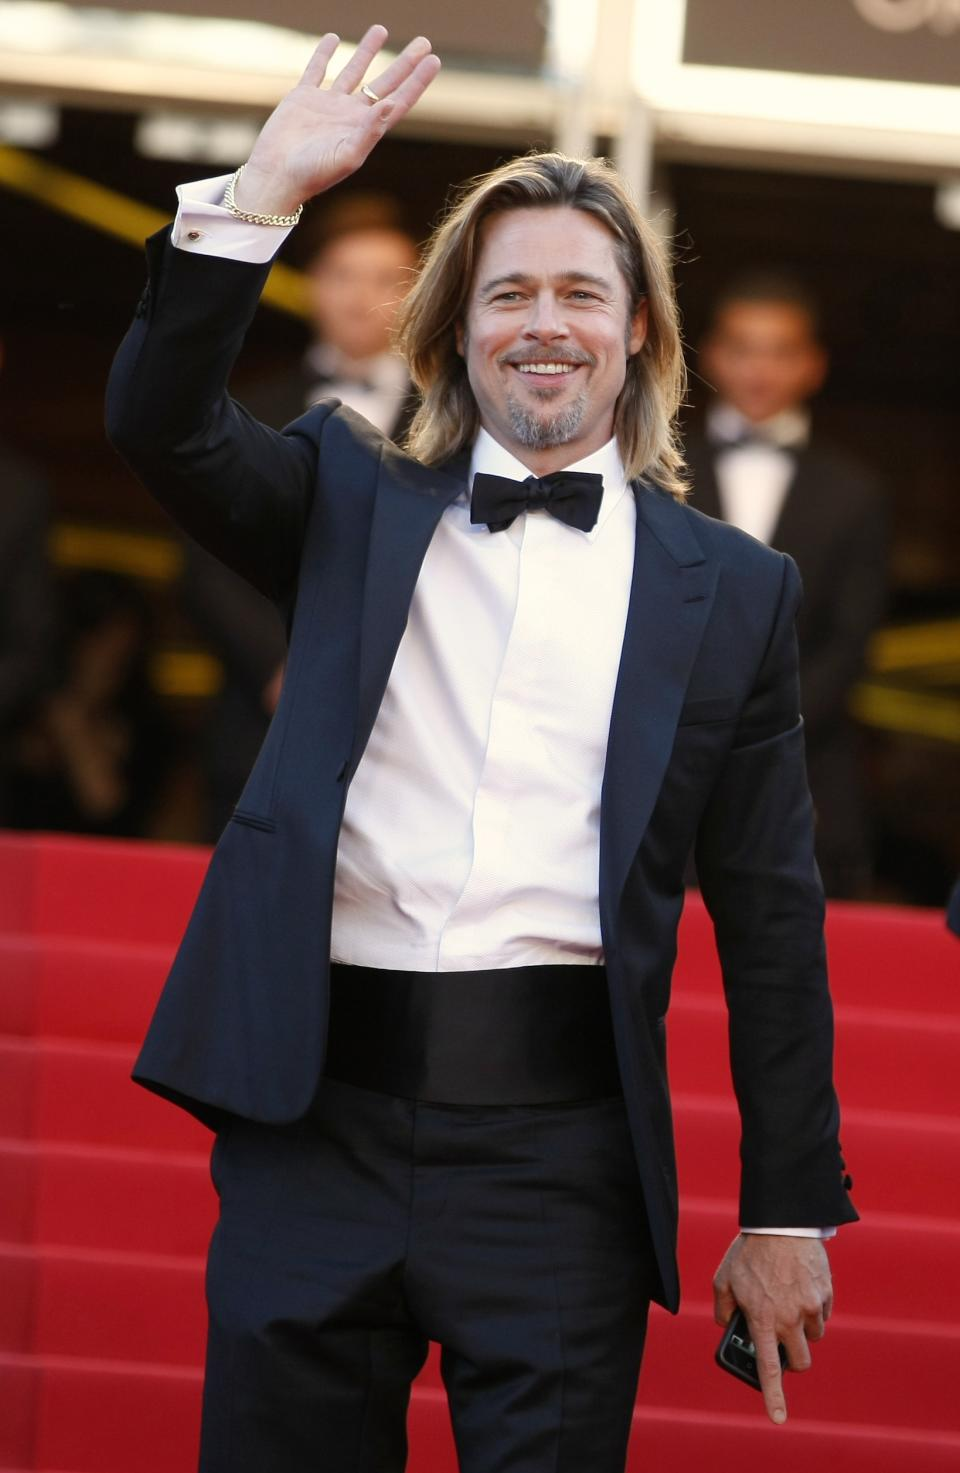 Actor Brad Pitt waves as he arrives for the screening of Killing Them Softly at the 65th international film festival, in Cannes, southern France, Tuesday, May 22, 2012. (AP Photo/Lionel Cironneau)